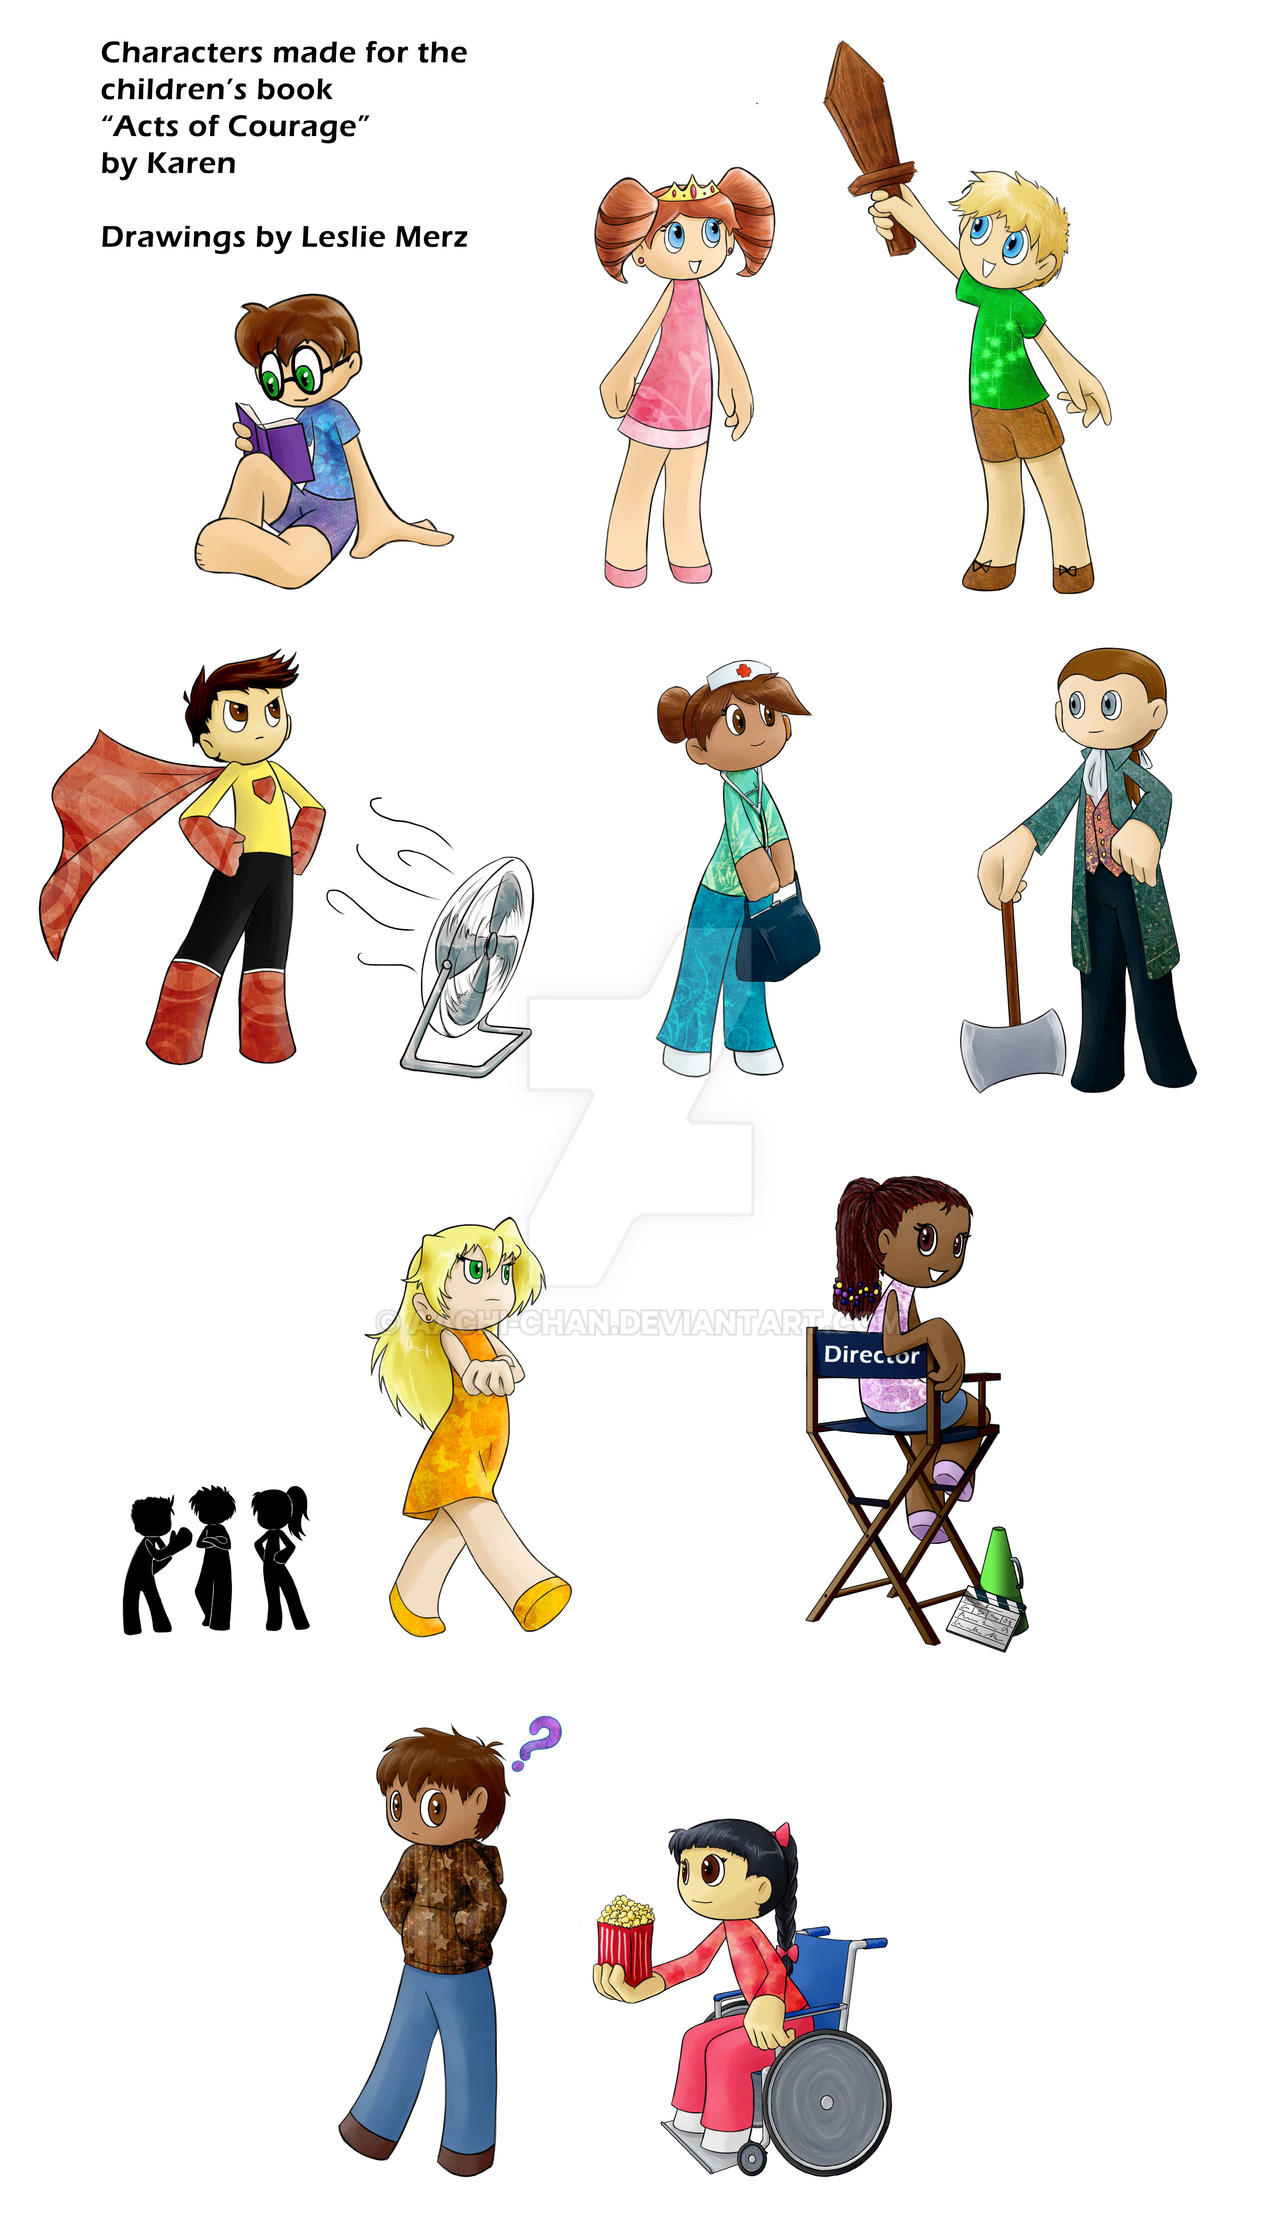 Character Design For Children S Books : Childrens books characters imgkid the image